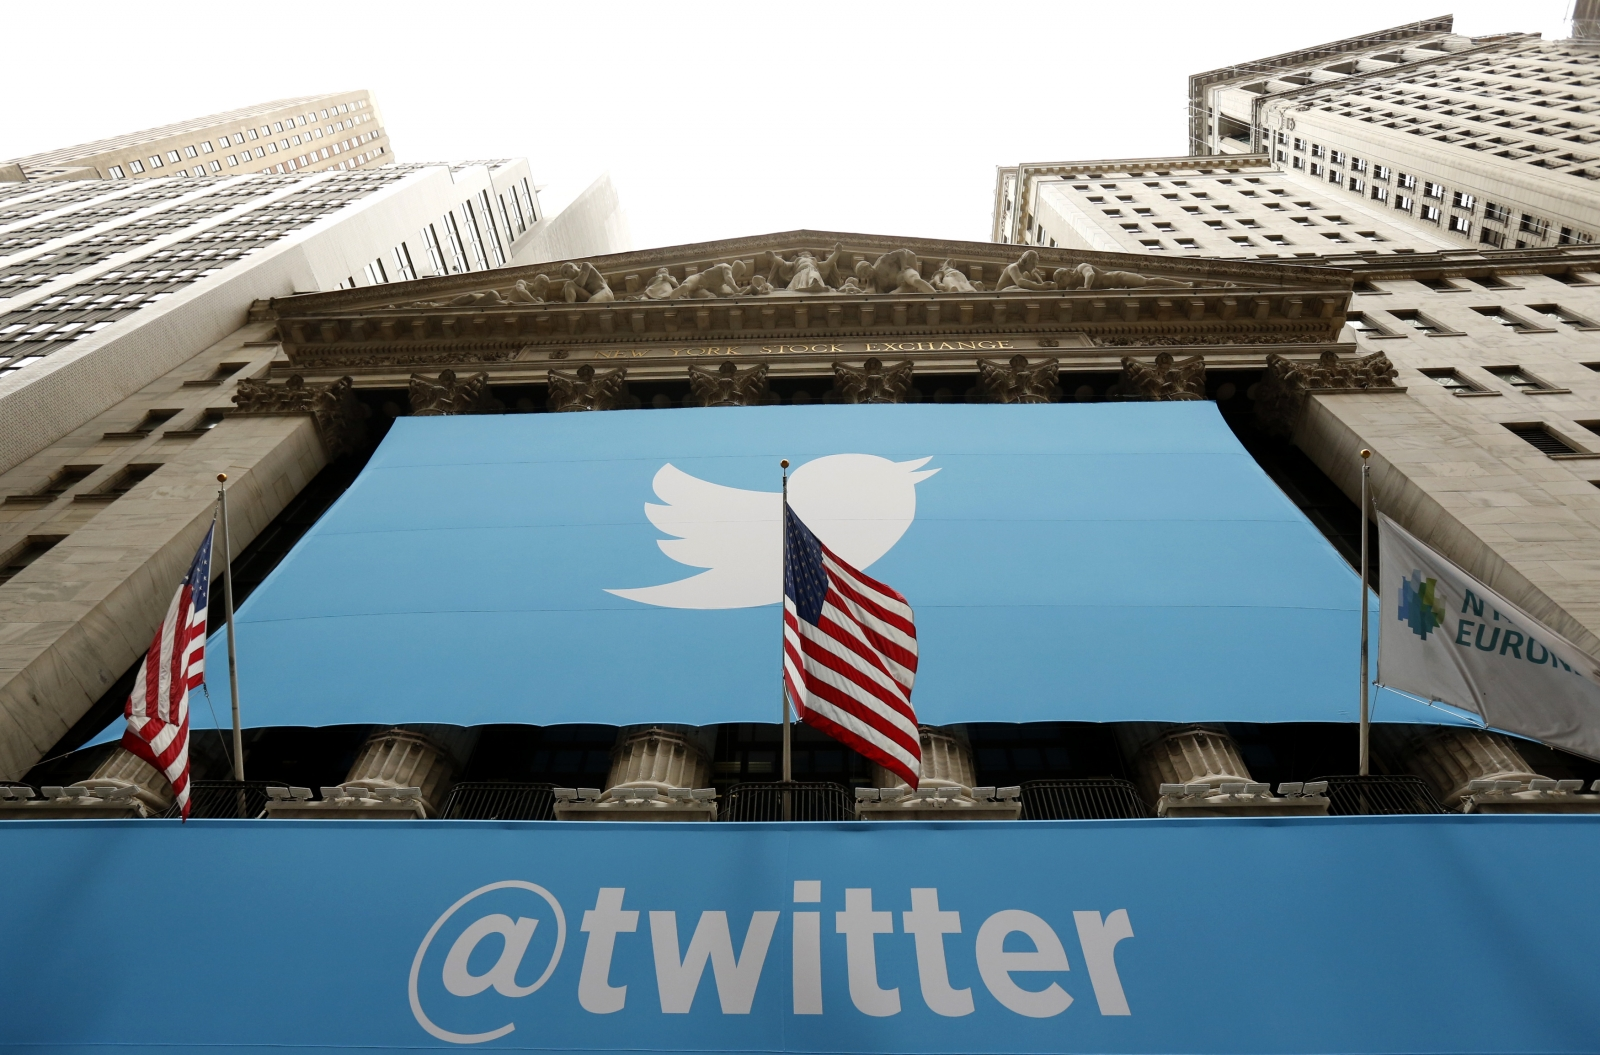 Twitter sees a decline in quarterly loss but slowest revenue growth since 2013